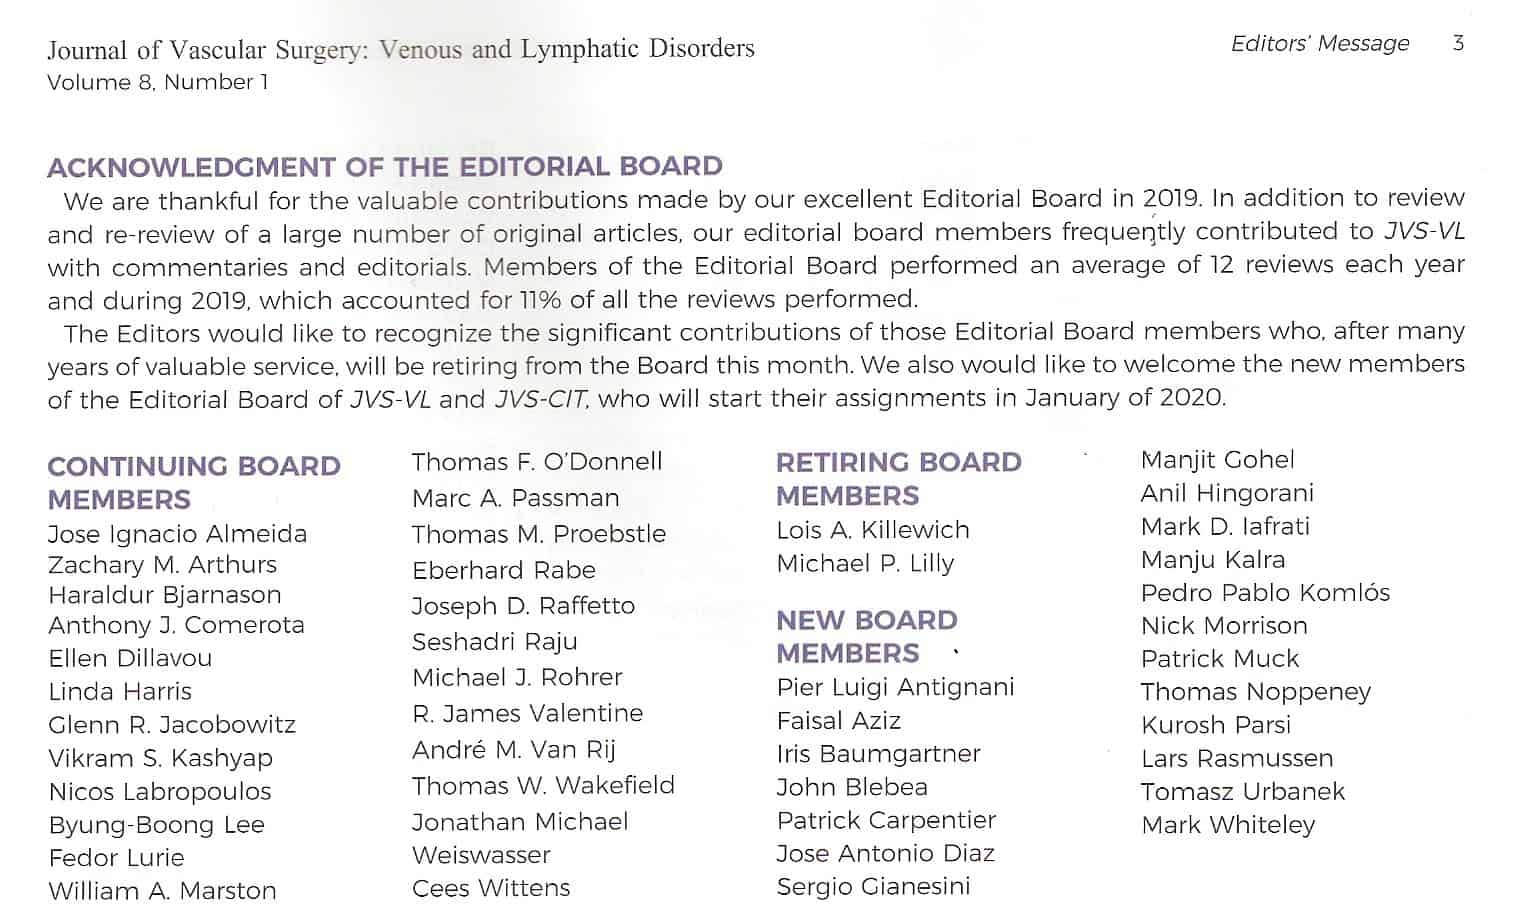 Mark Whiteley – New editorial board member of The Journal of Vascular Surgery Venous and Lymphatic Disorders (JVSVL) – Announced January 2020